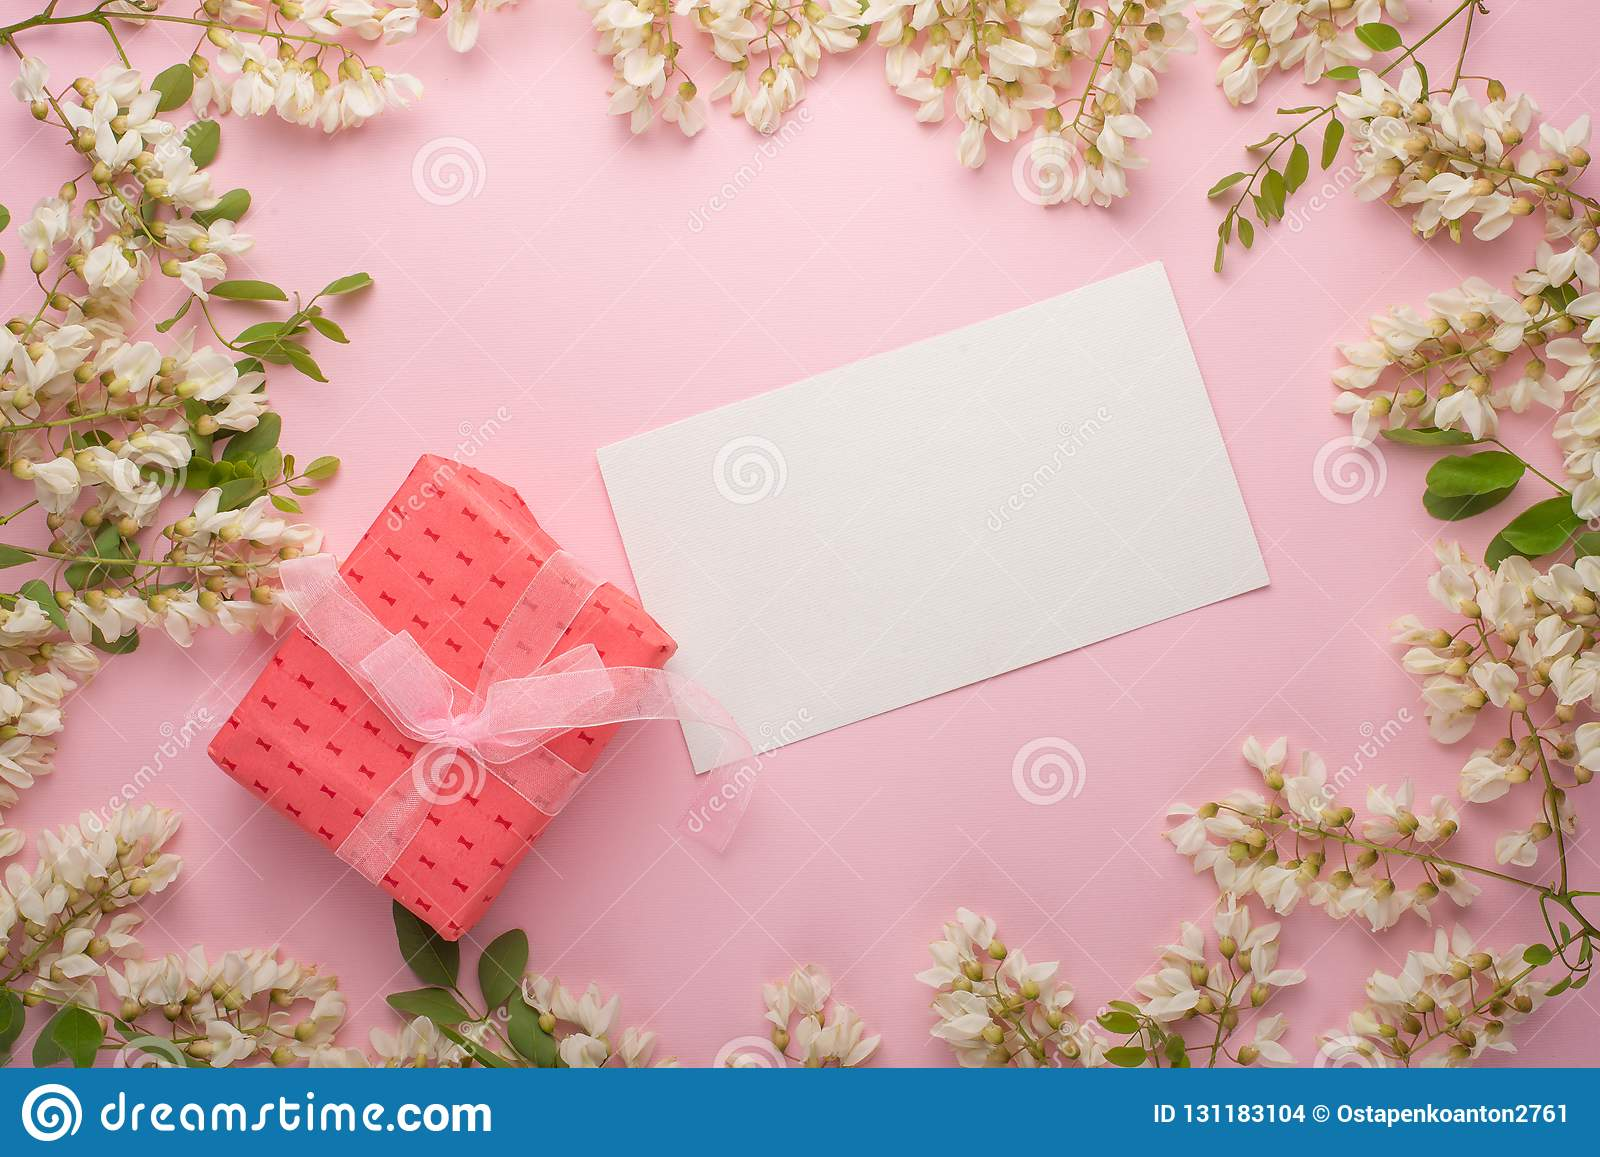 Spring Floral Background With Gift, Texture And Wallpaper